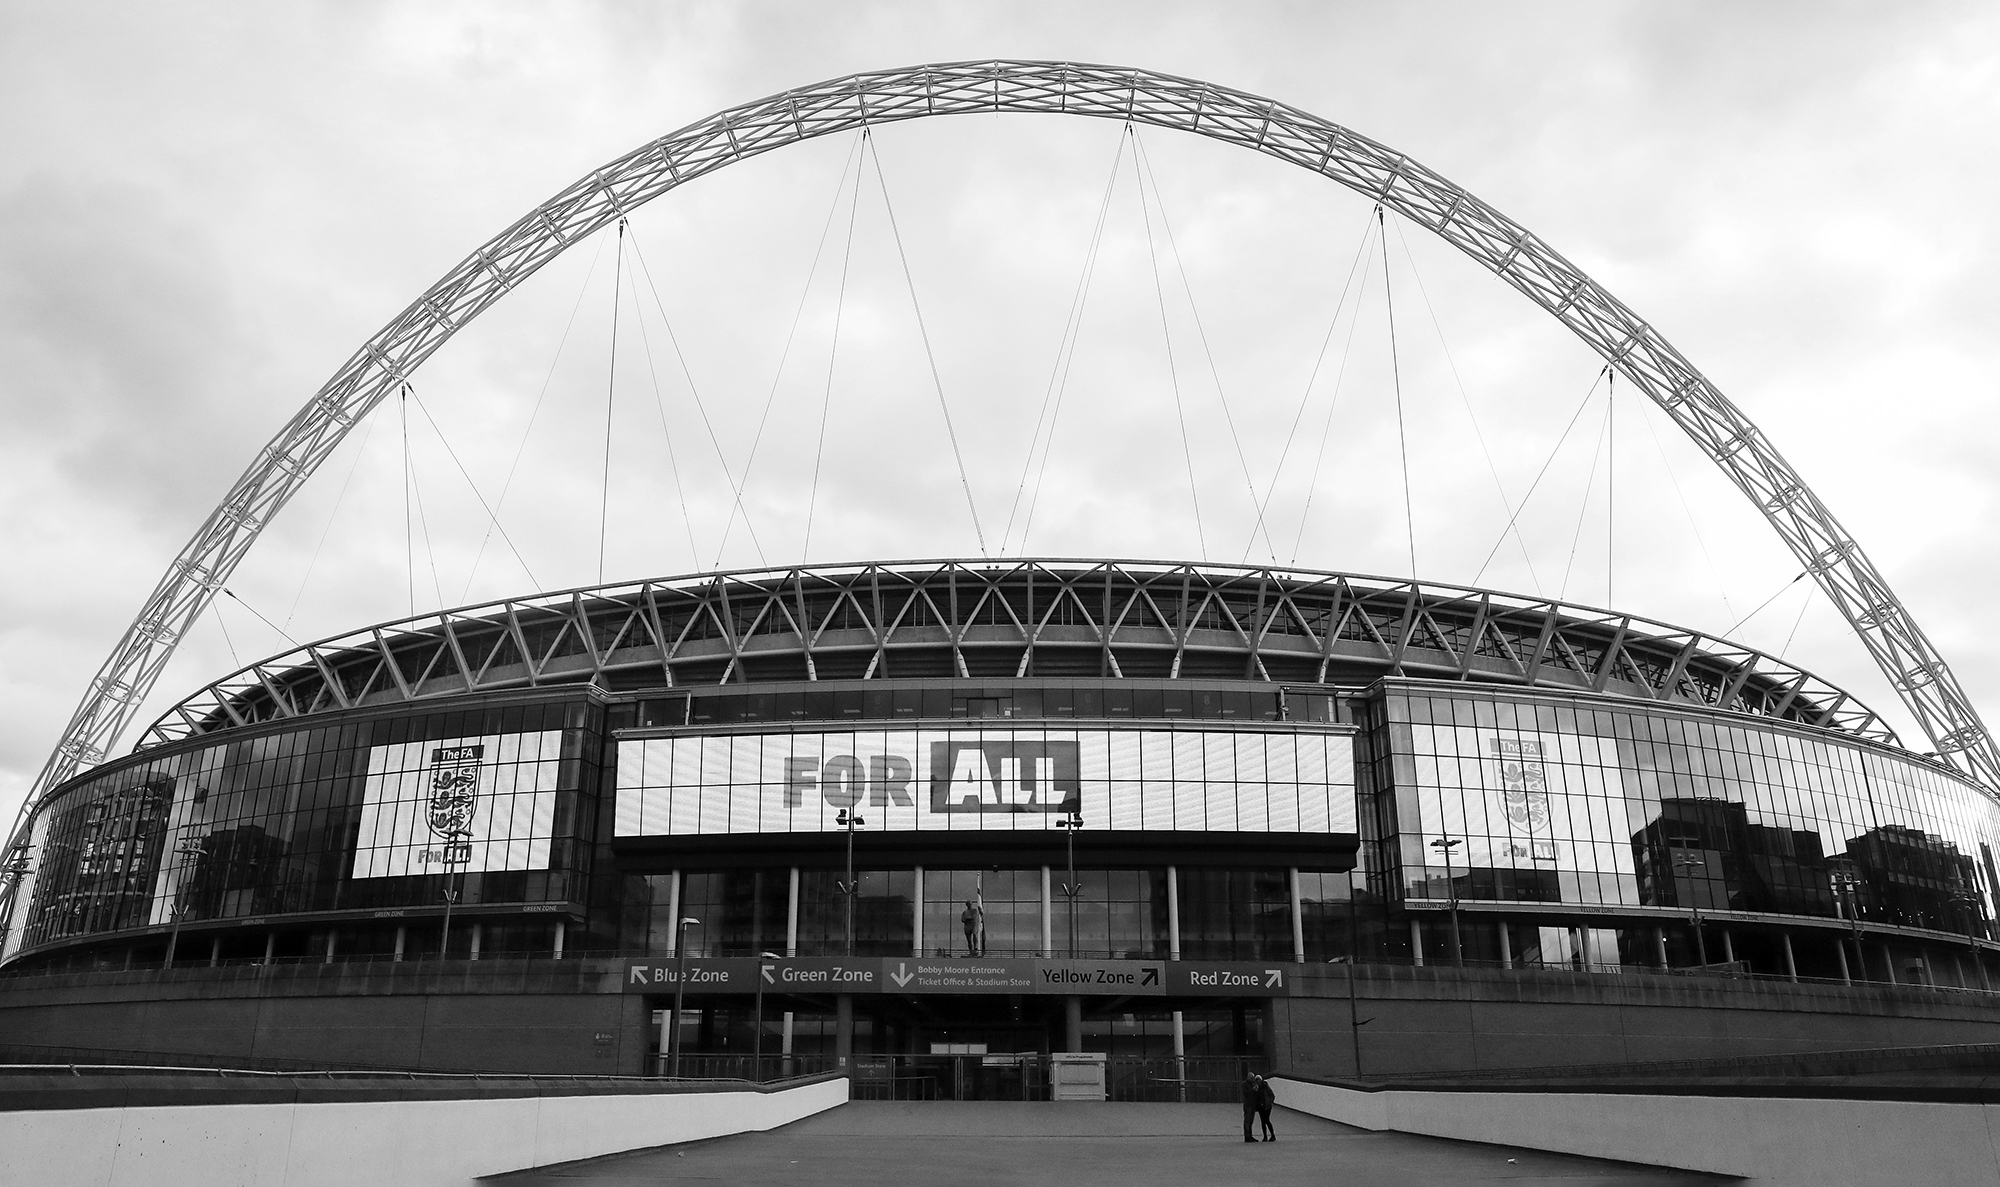 I've Been Fighting for Diversity in Football – But Will It Ever Make a Difference if the FA Board Stays the Same?